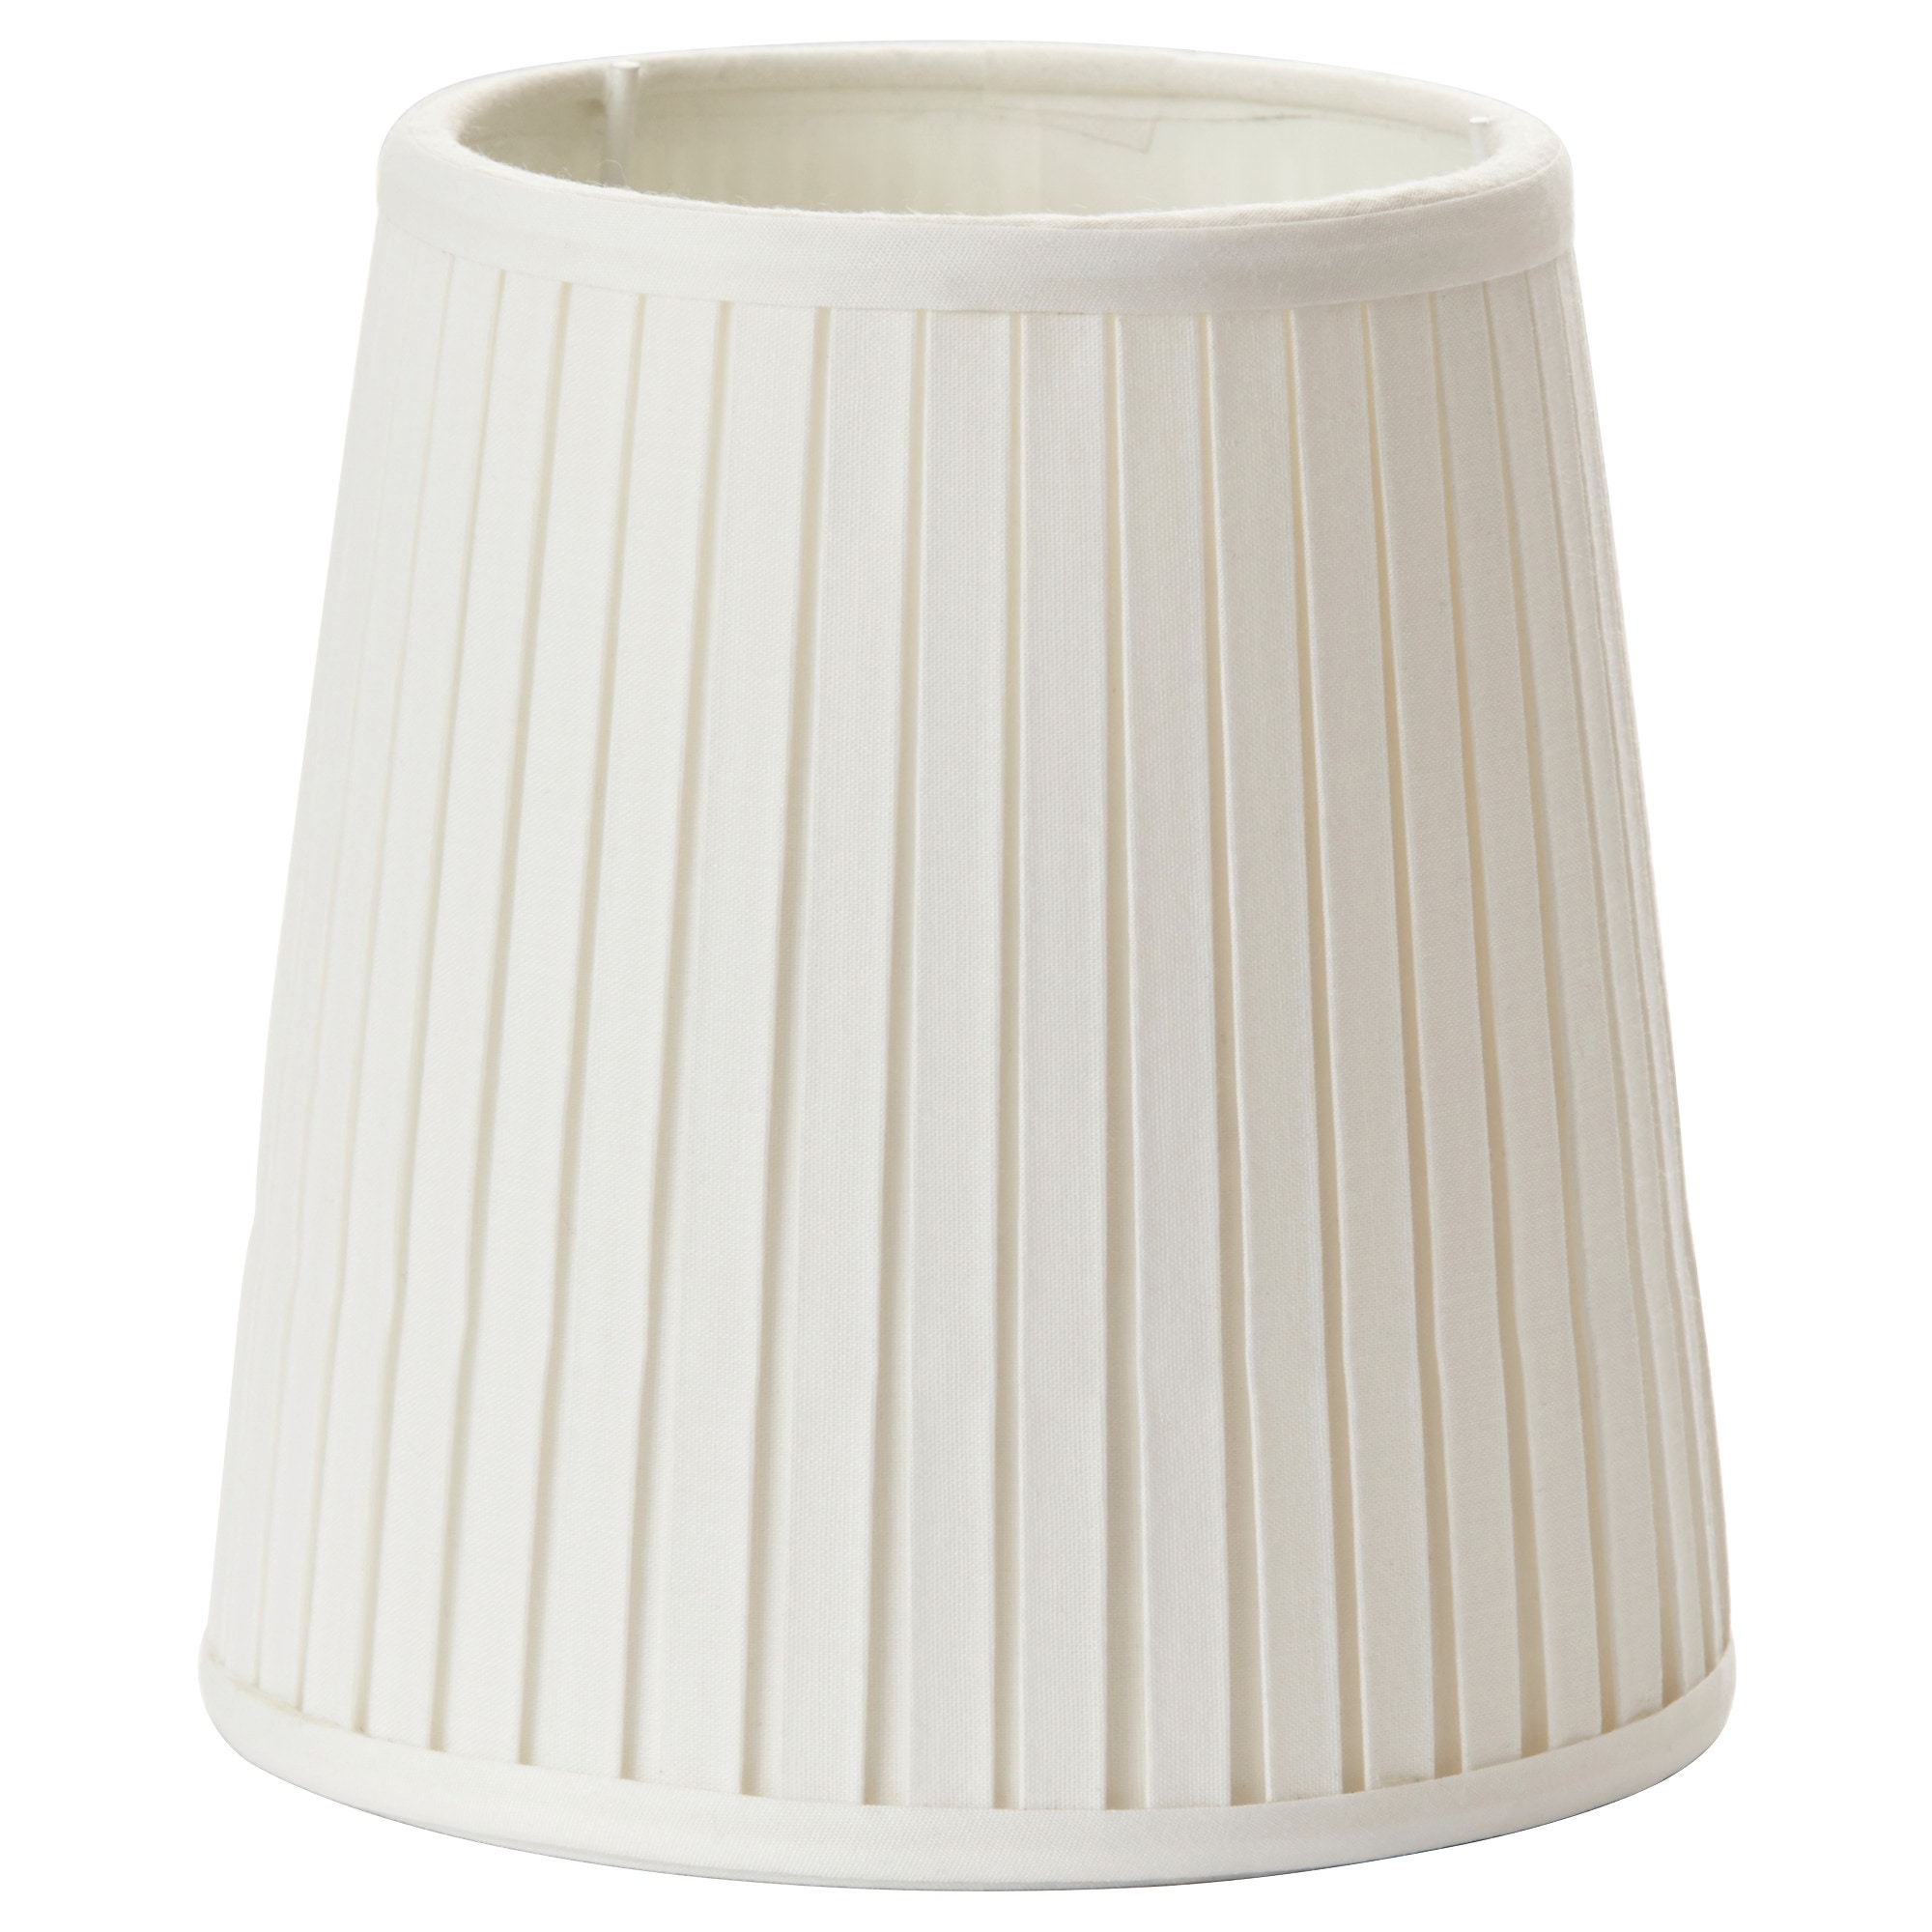 Ikea Malm Bett Lattenrost Rutscht ~ Floor Lamp Shade Replacement Ikea EKÃ?S lamp shade, off white